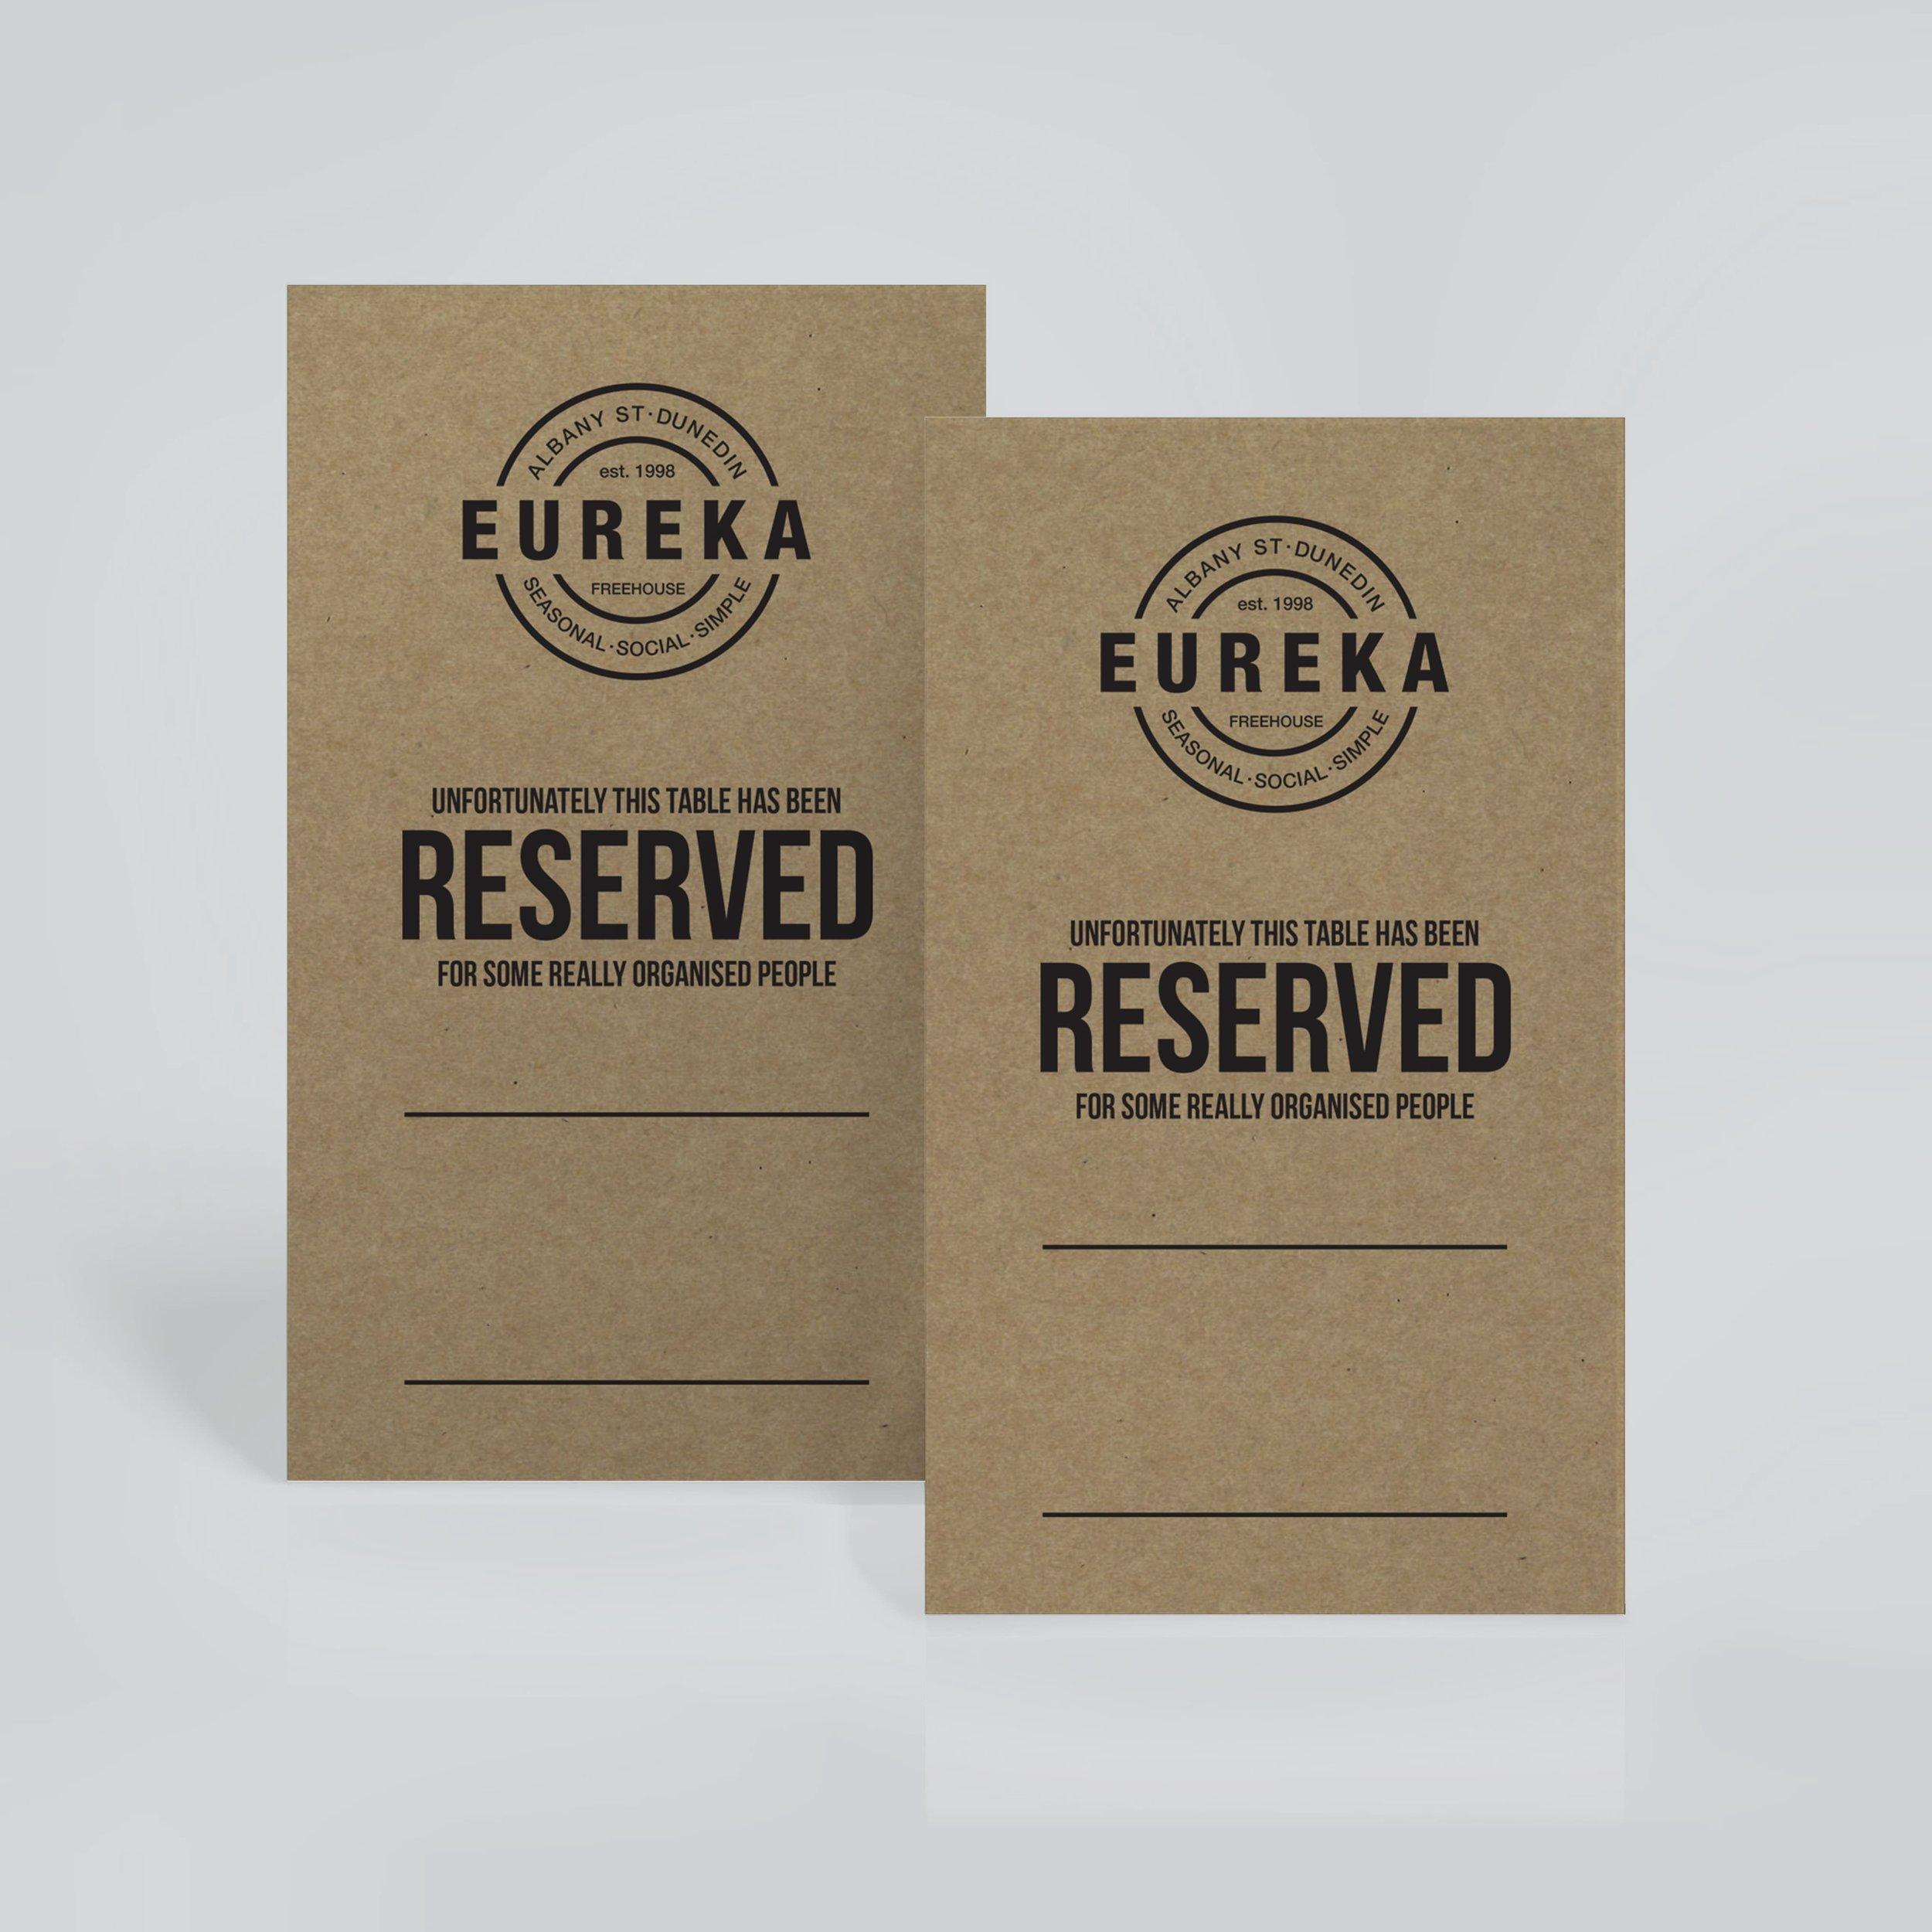 Eureka Reserved Sign (square)-min.jpg